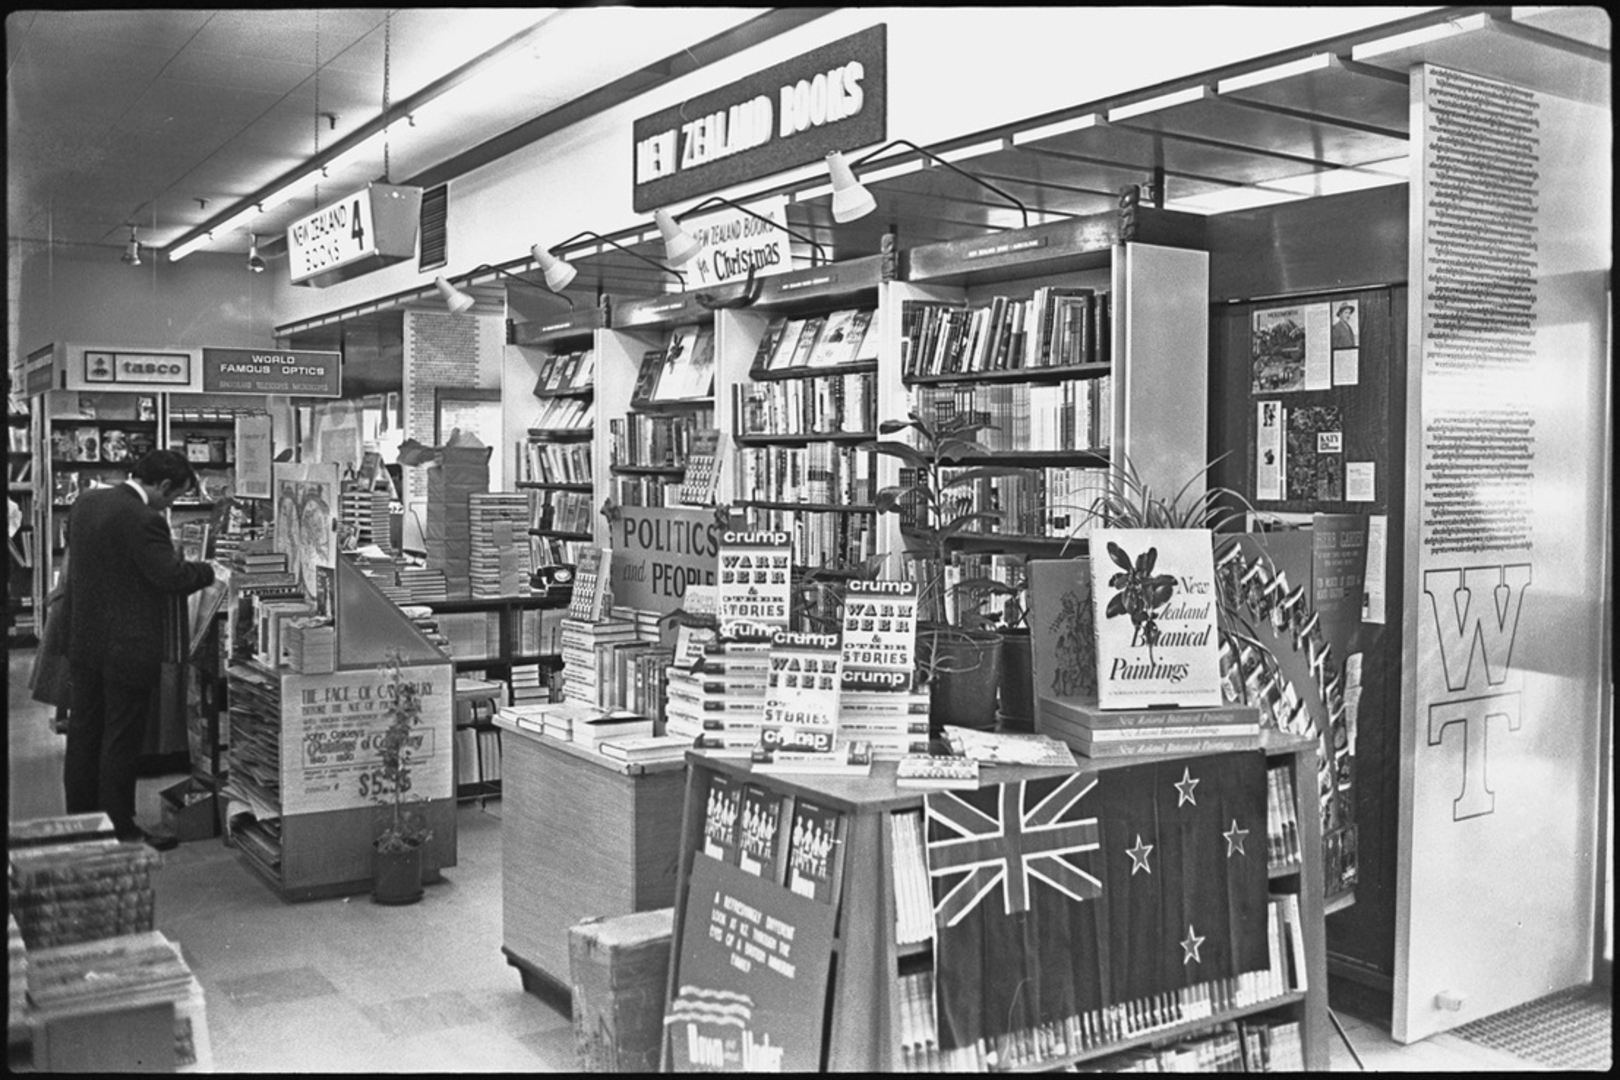 Whitcomb and Tombs book display, 1969